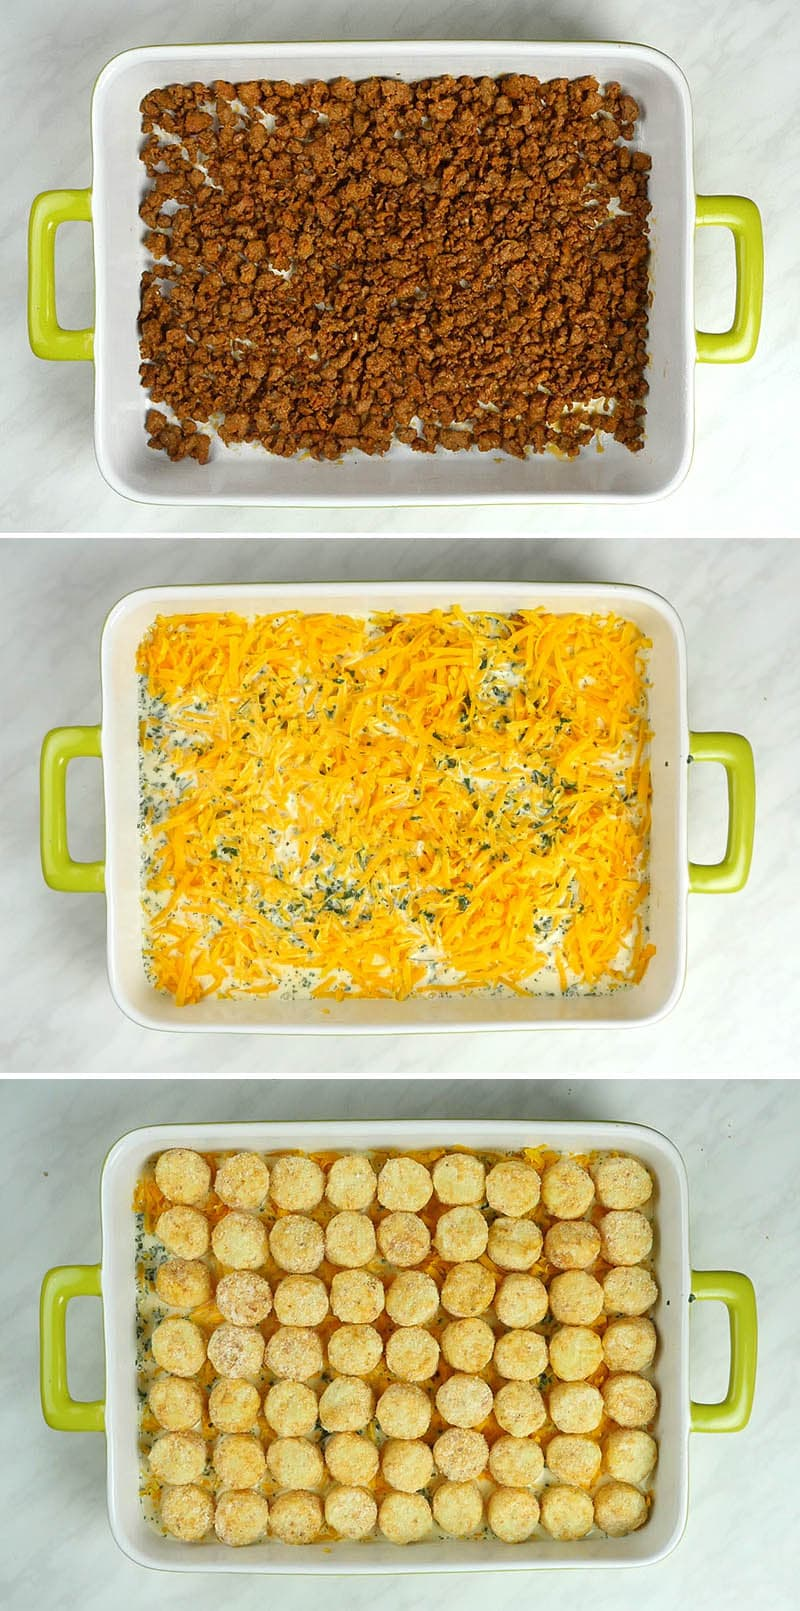 Three steps of preparing Tater Tot casserole!